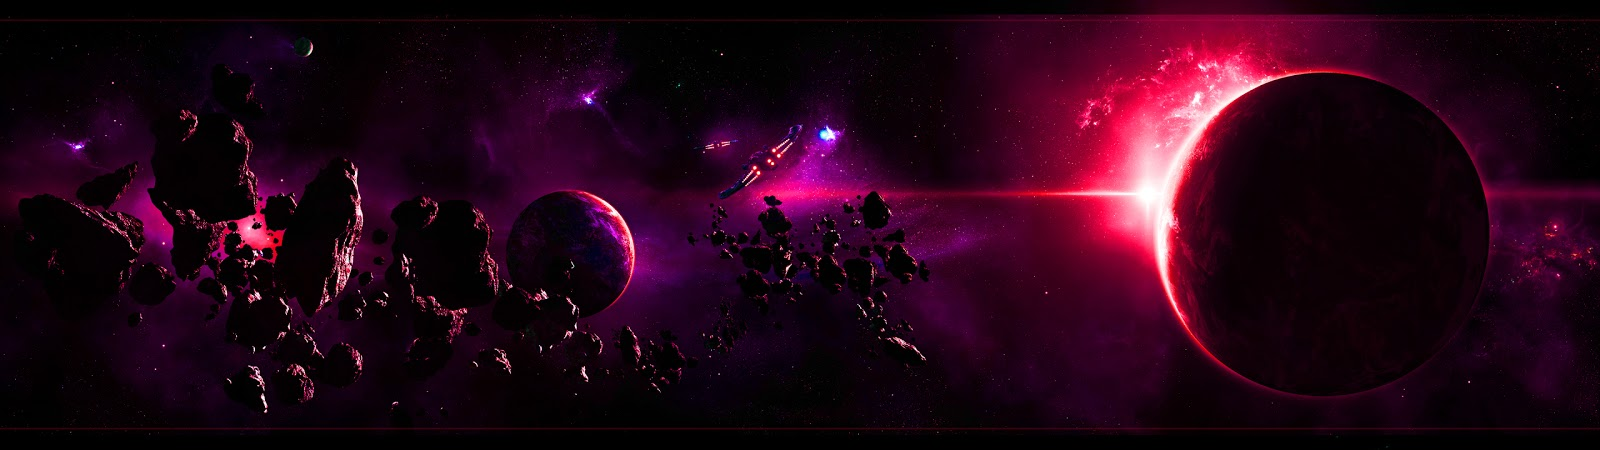 day dual screen monitor purple planet with asteroids space wallpaper 1600x450